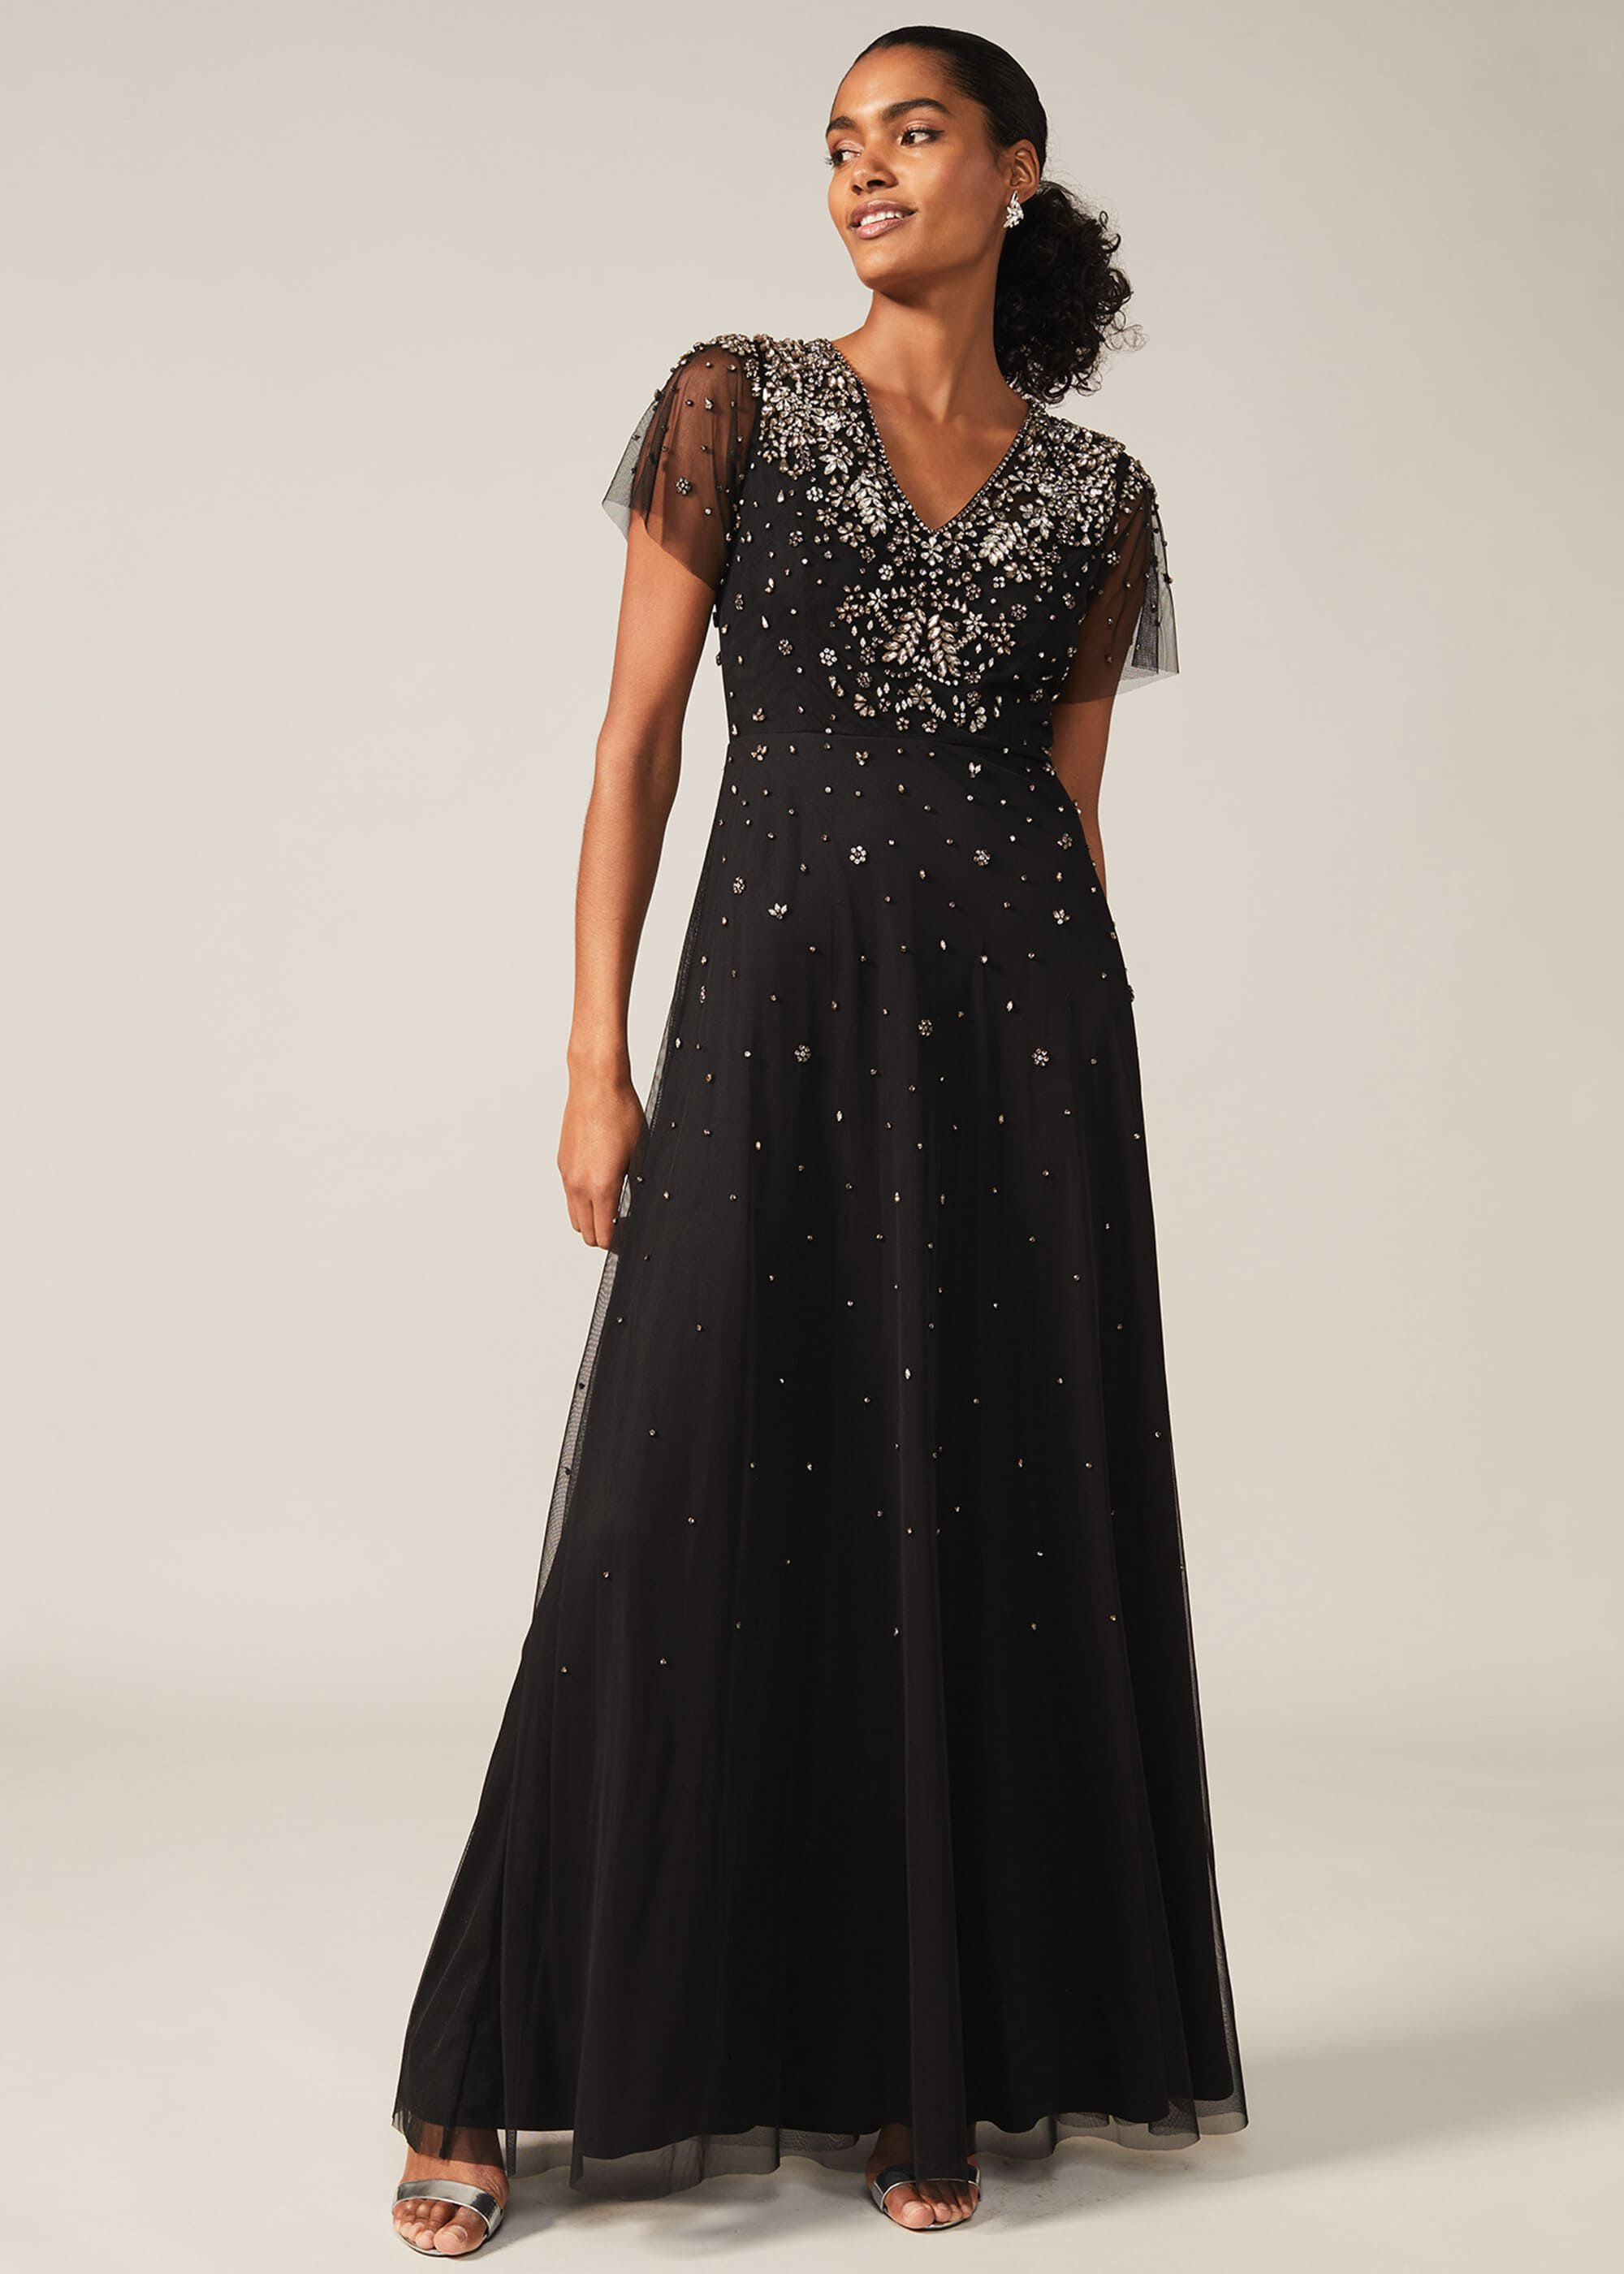 Phase Eight Pascale Jewelled Tulle Dress, Black, Occasion Dress